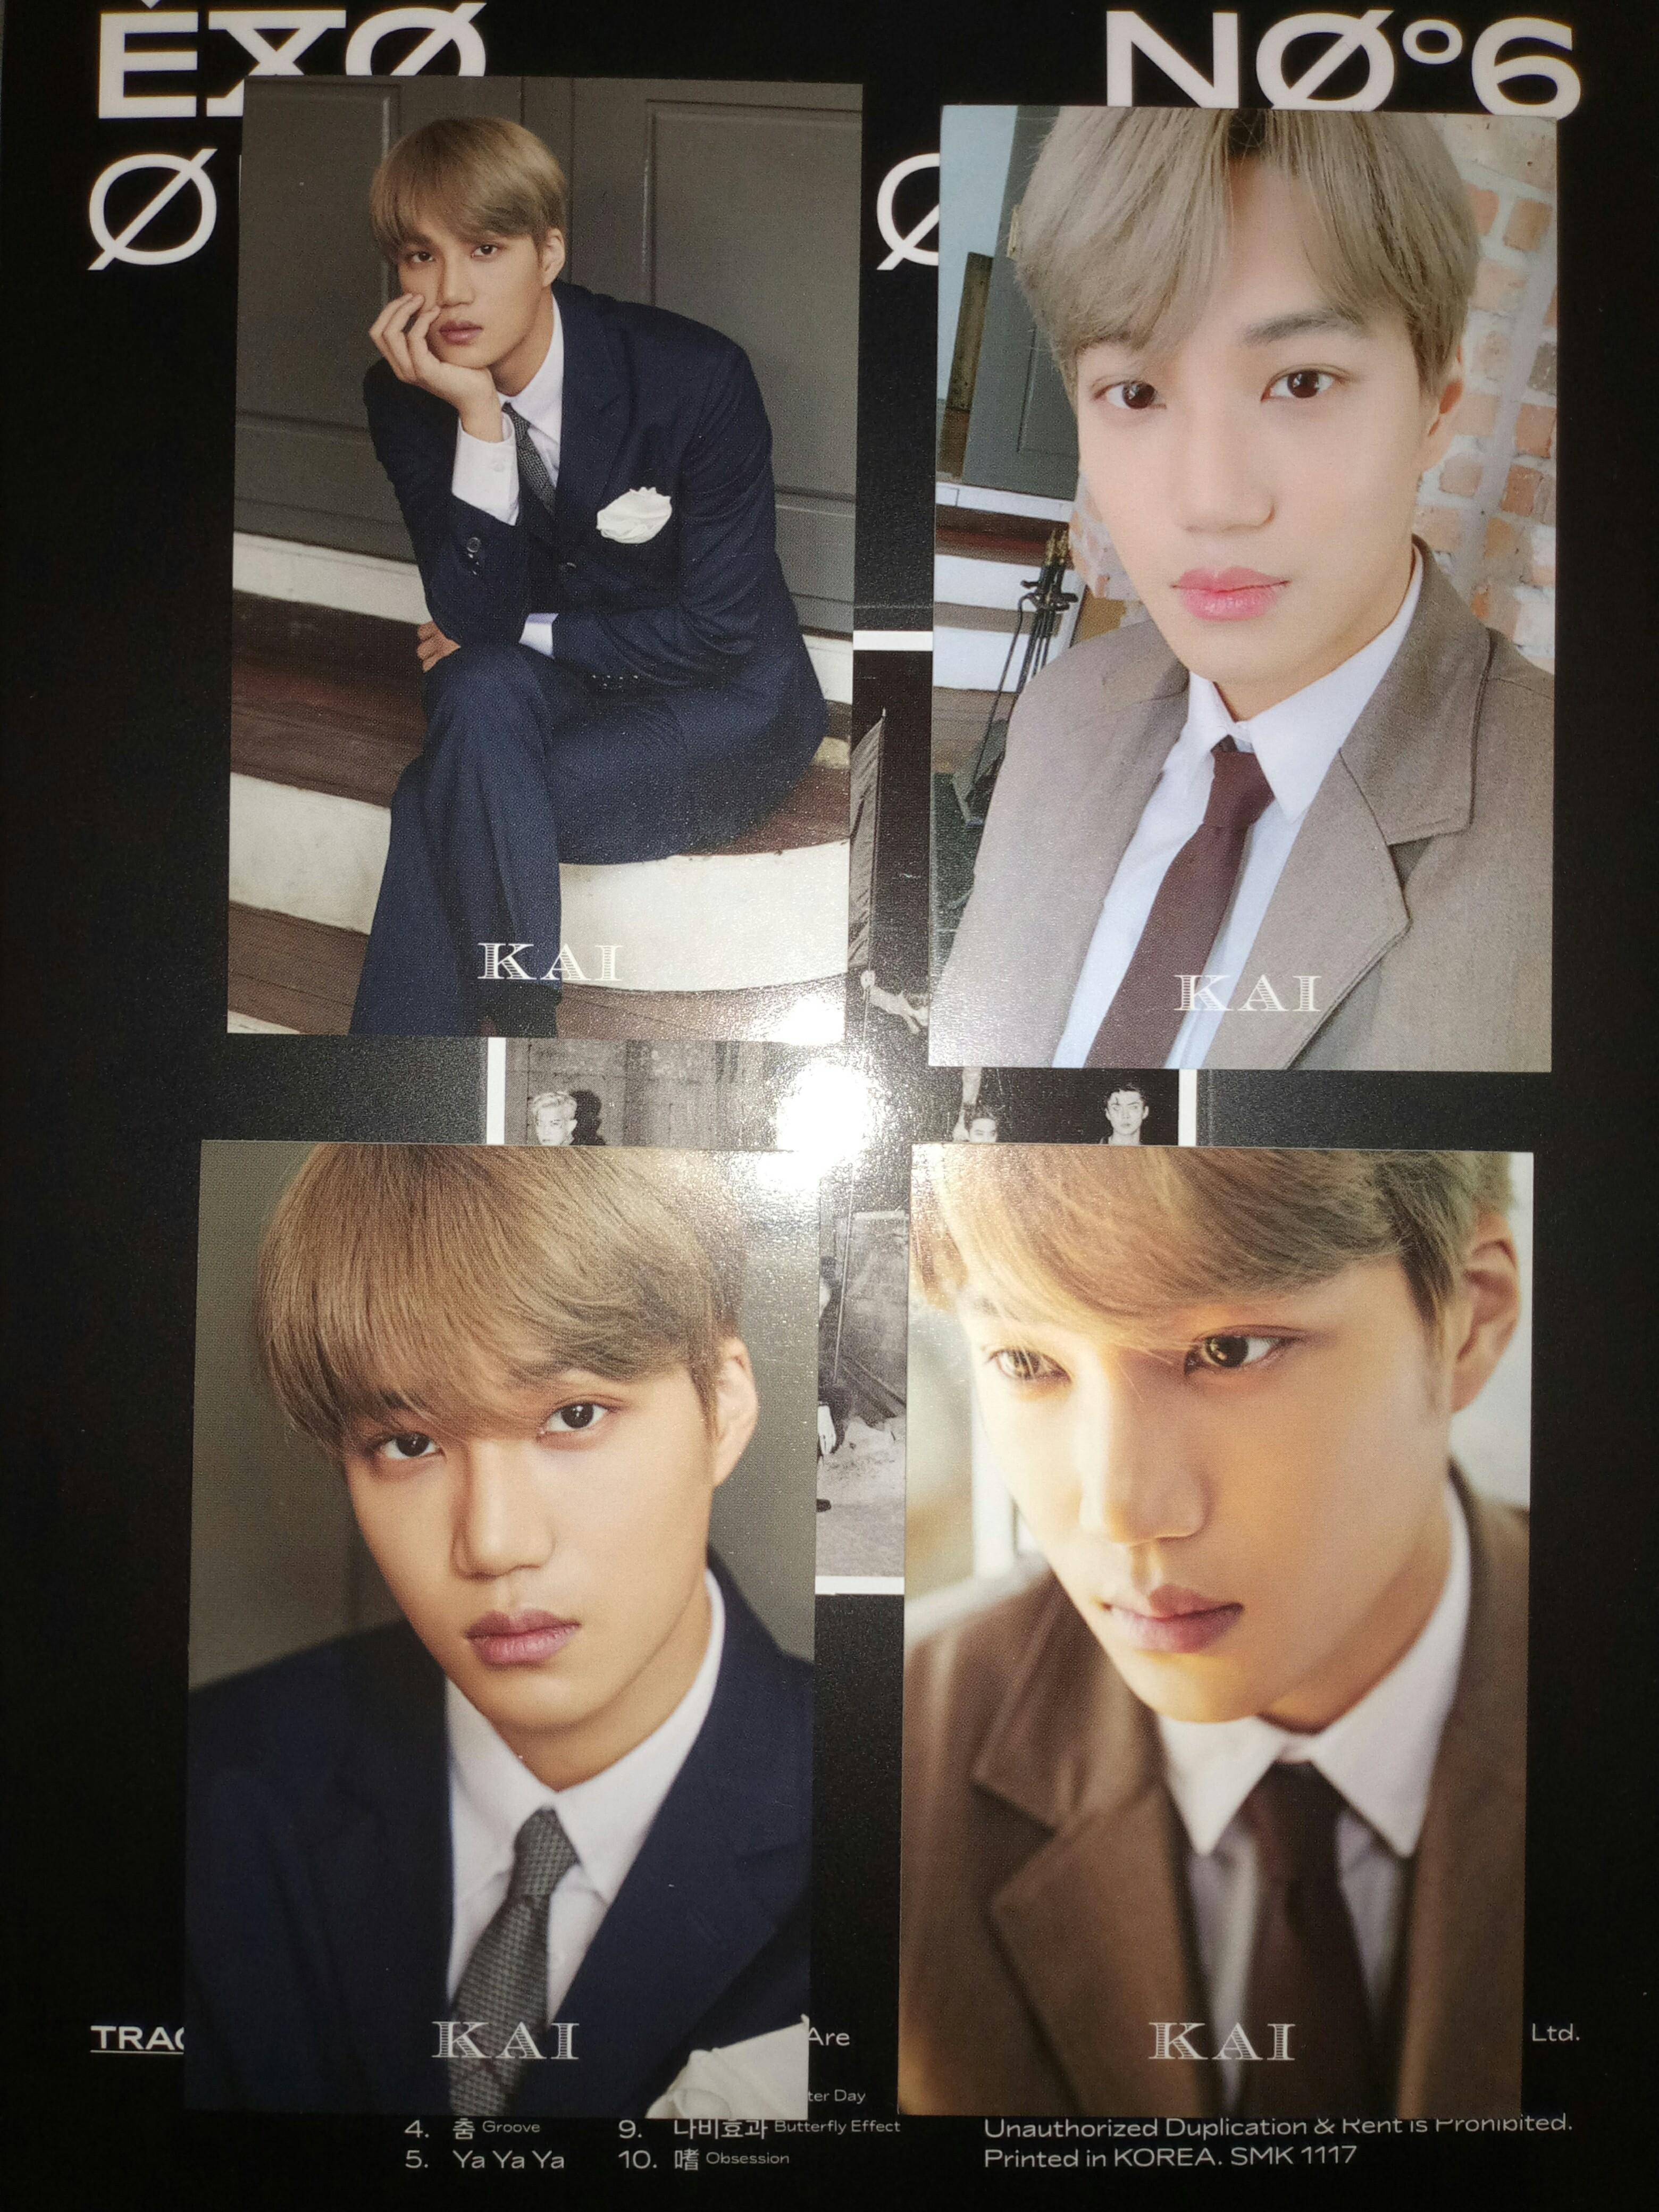 (SET) WTS - KAI FORTUNE PC (FROM EXO SEASON GREETINGS 2020)